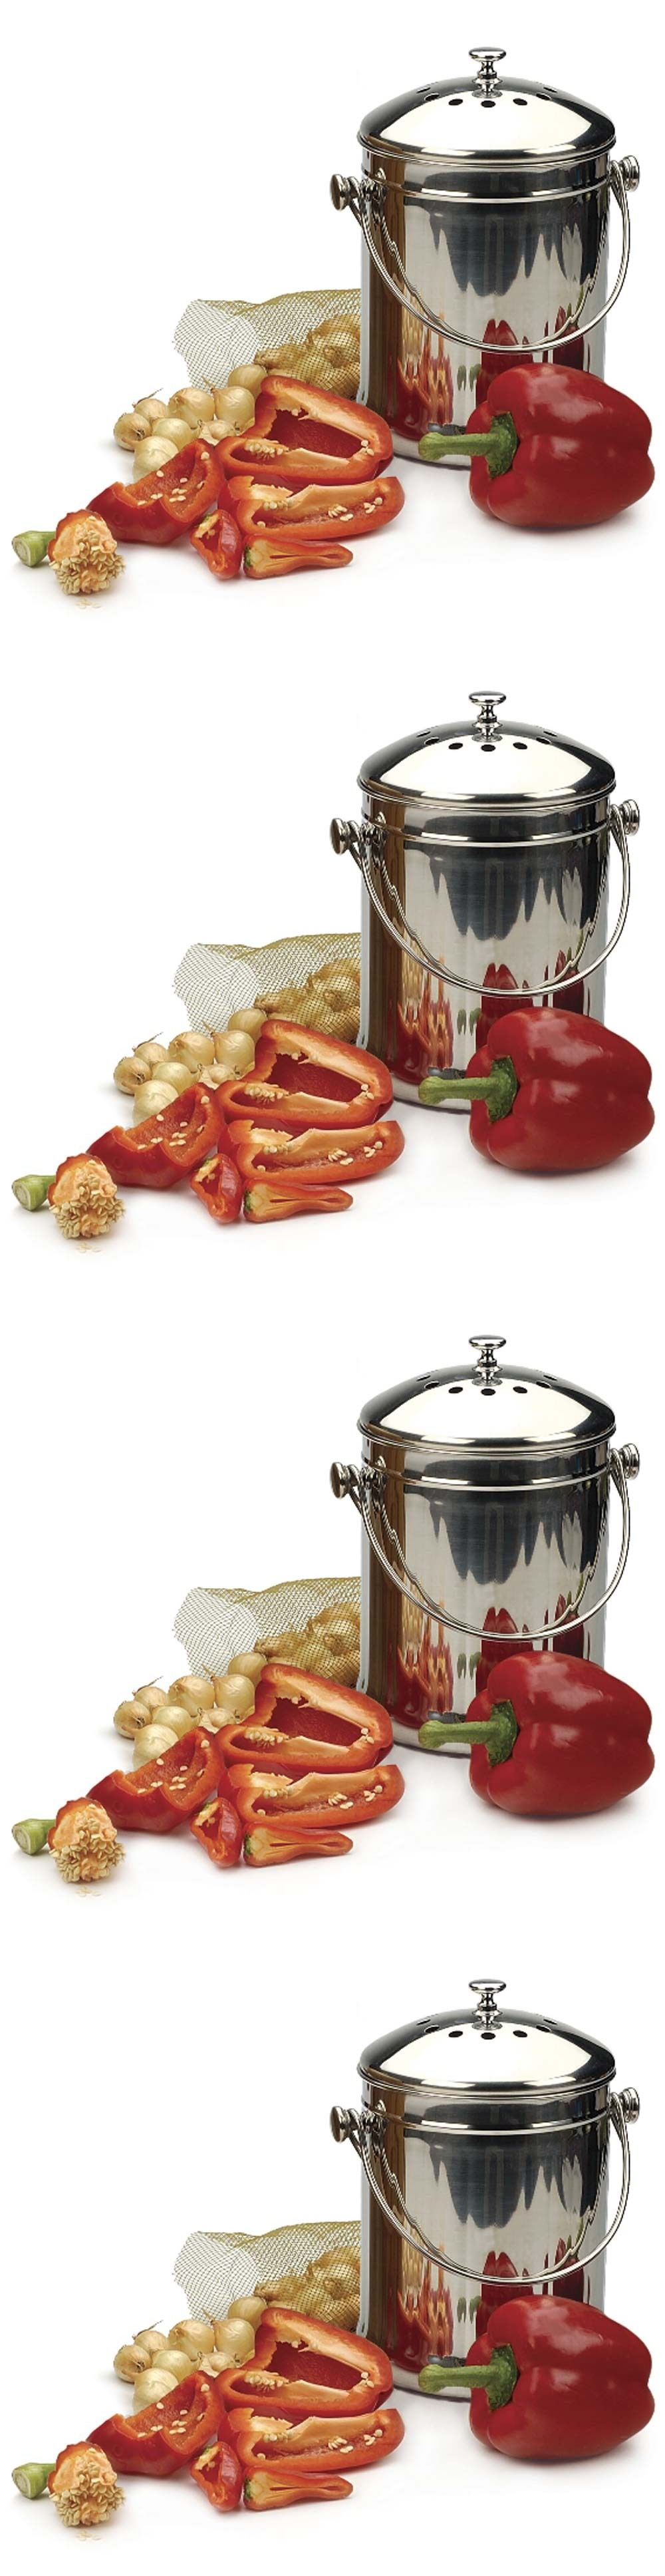 Garden Compost Bins 181023: Composter For Kitchen Compost Pail Stainless  Steel Indoor Organic Recycling Bin